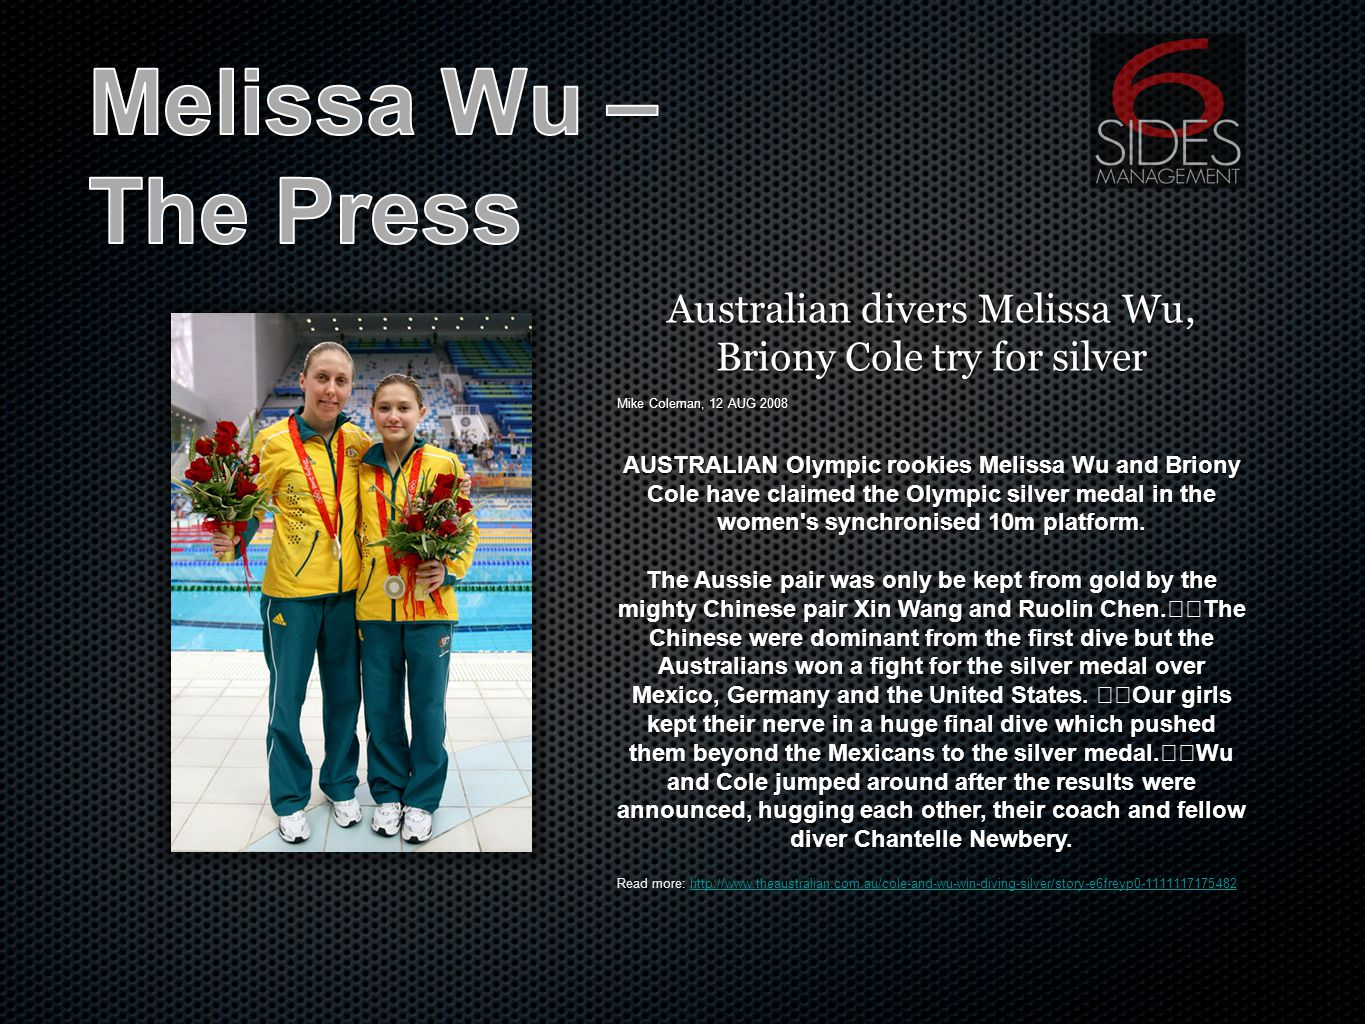 Australian divers Melissa Wu, Briony Cole try for silver Mike Coleman, 12 AUG 2008 AUSTRALIAN Olympic rookies Melissa Wu and Briony Cole have claimed the Olympic silver medal in the women s synchronised 10m platform.